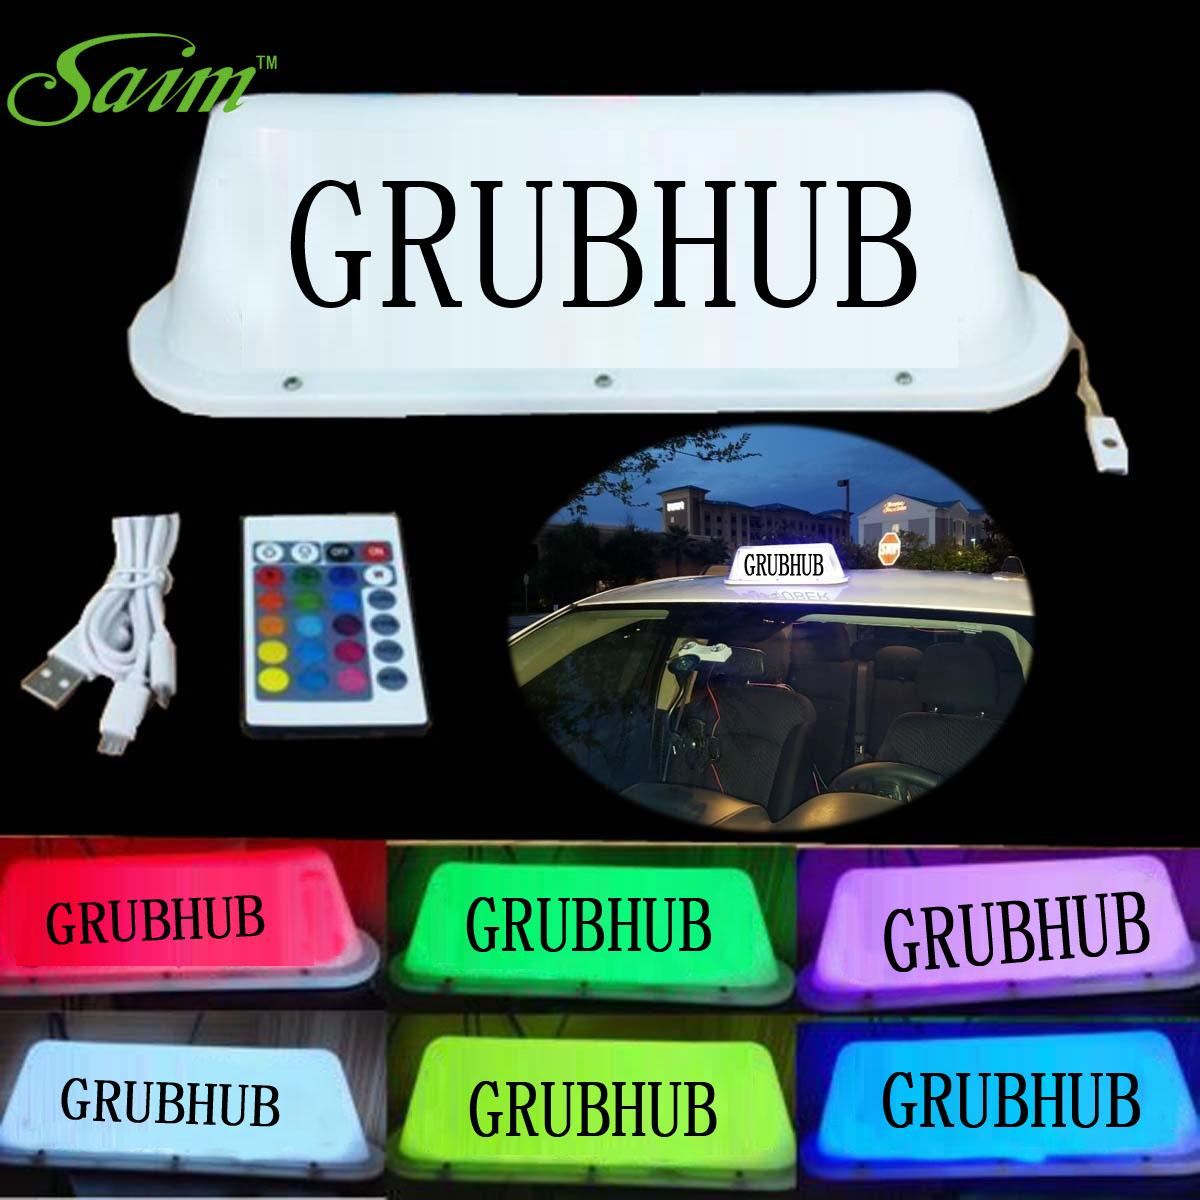 GRUBHUB Taxi Top Light LED Roof Bright Glowing Car Logo Wireless Sign TOP light for TAXI DRIVERS